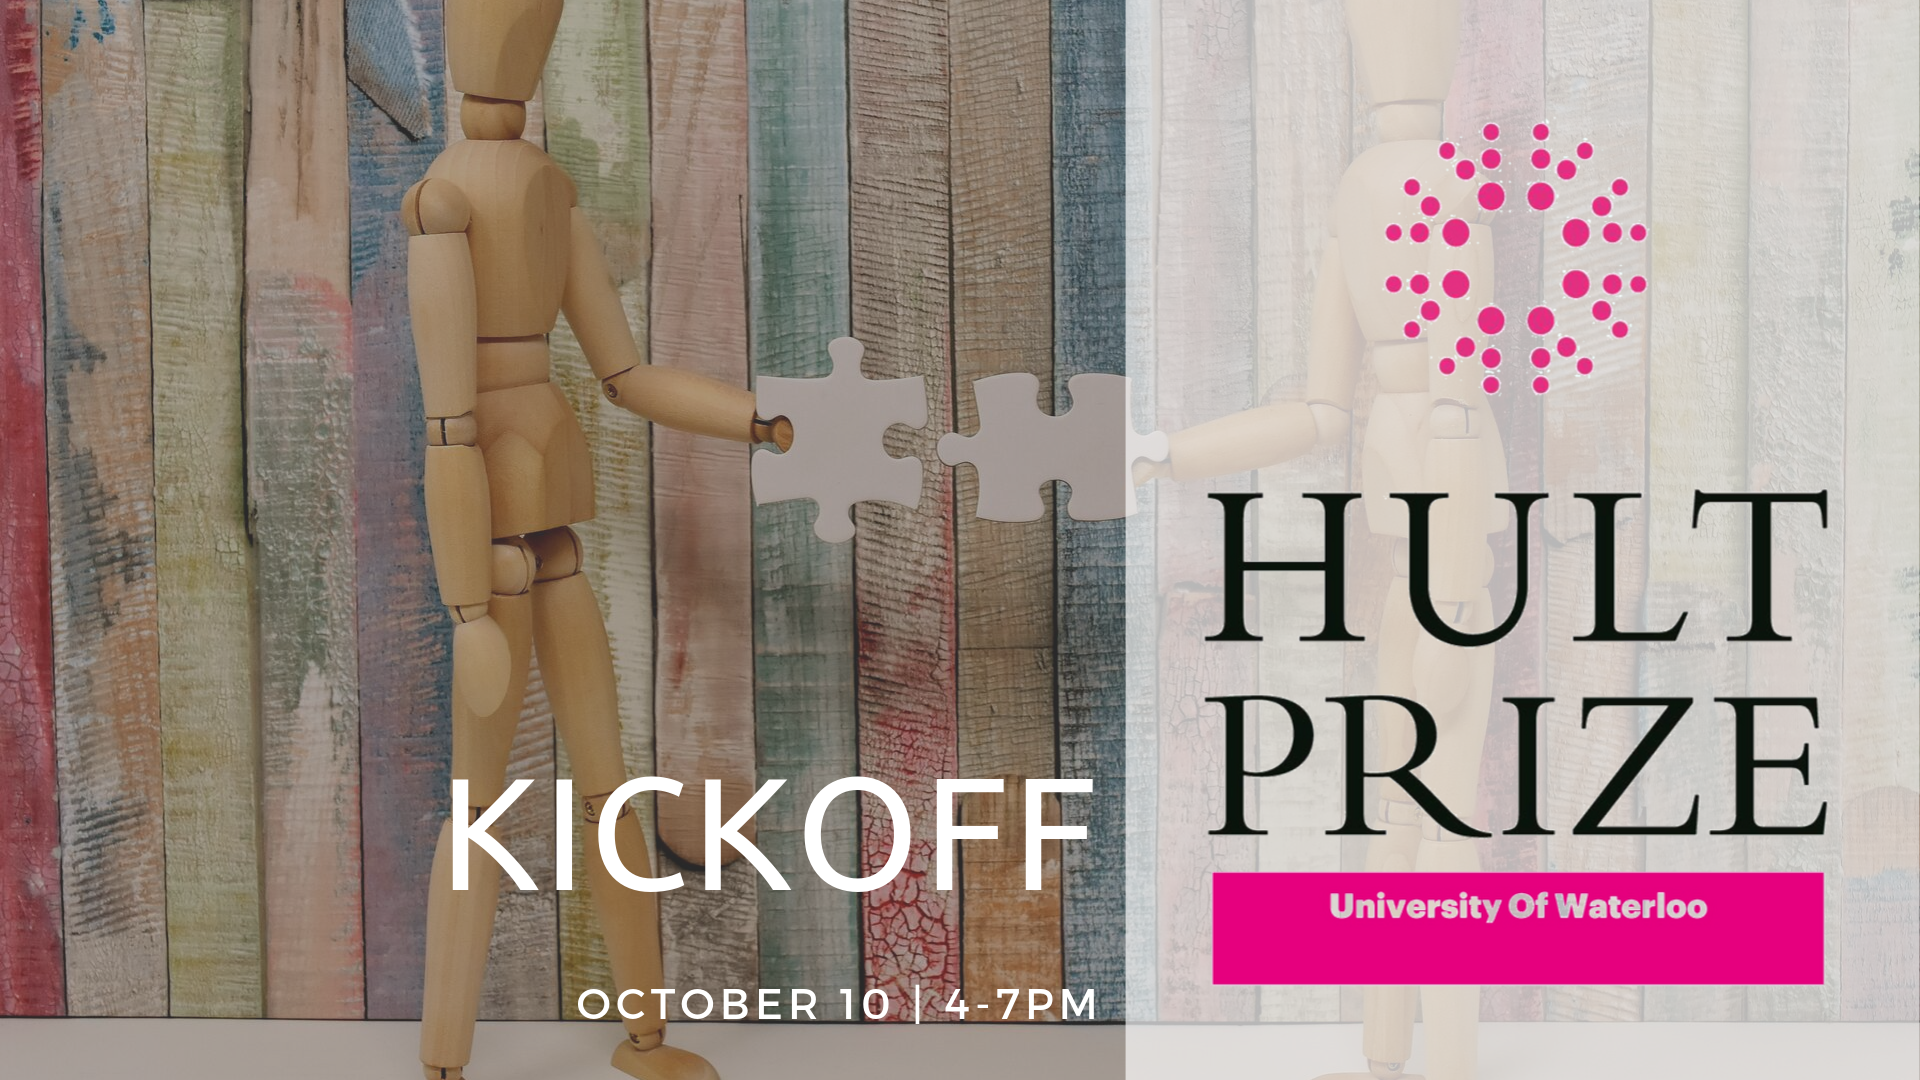 Hult prize kickoff flyer